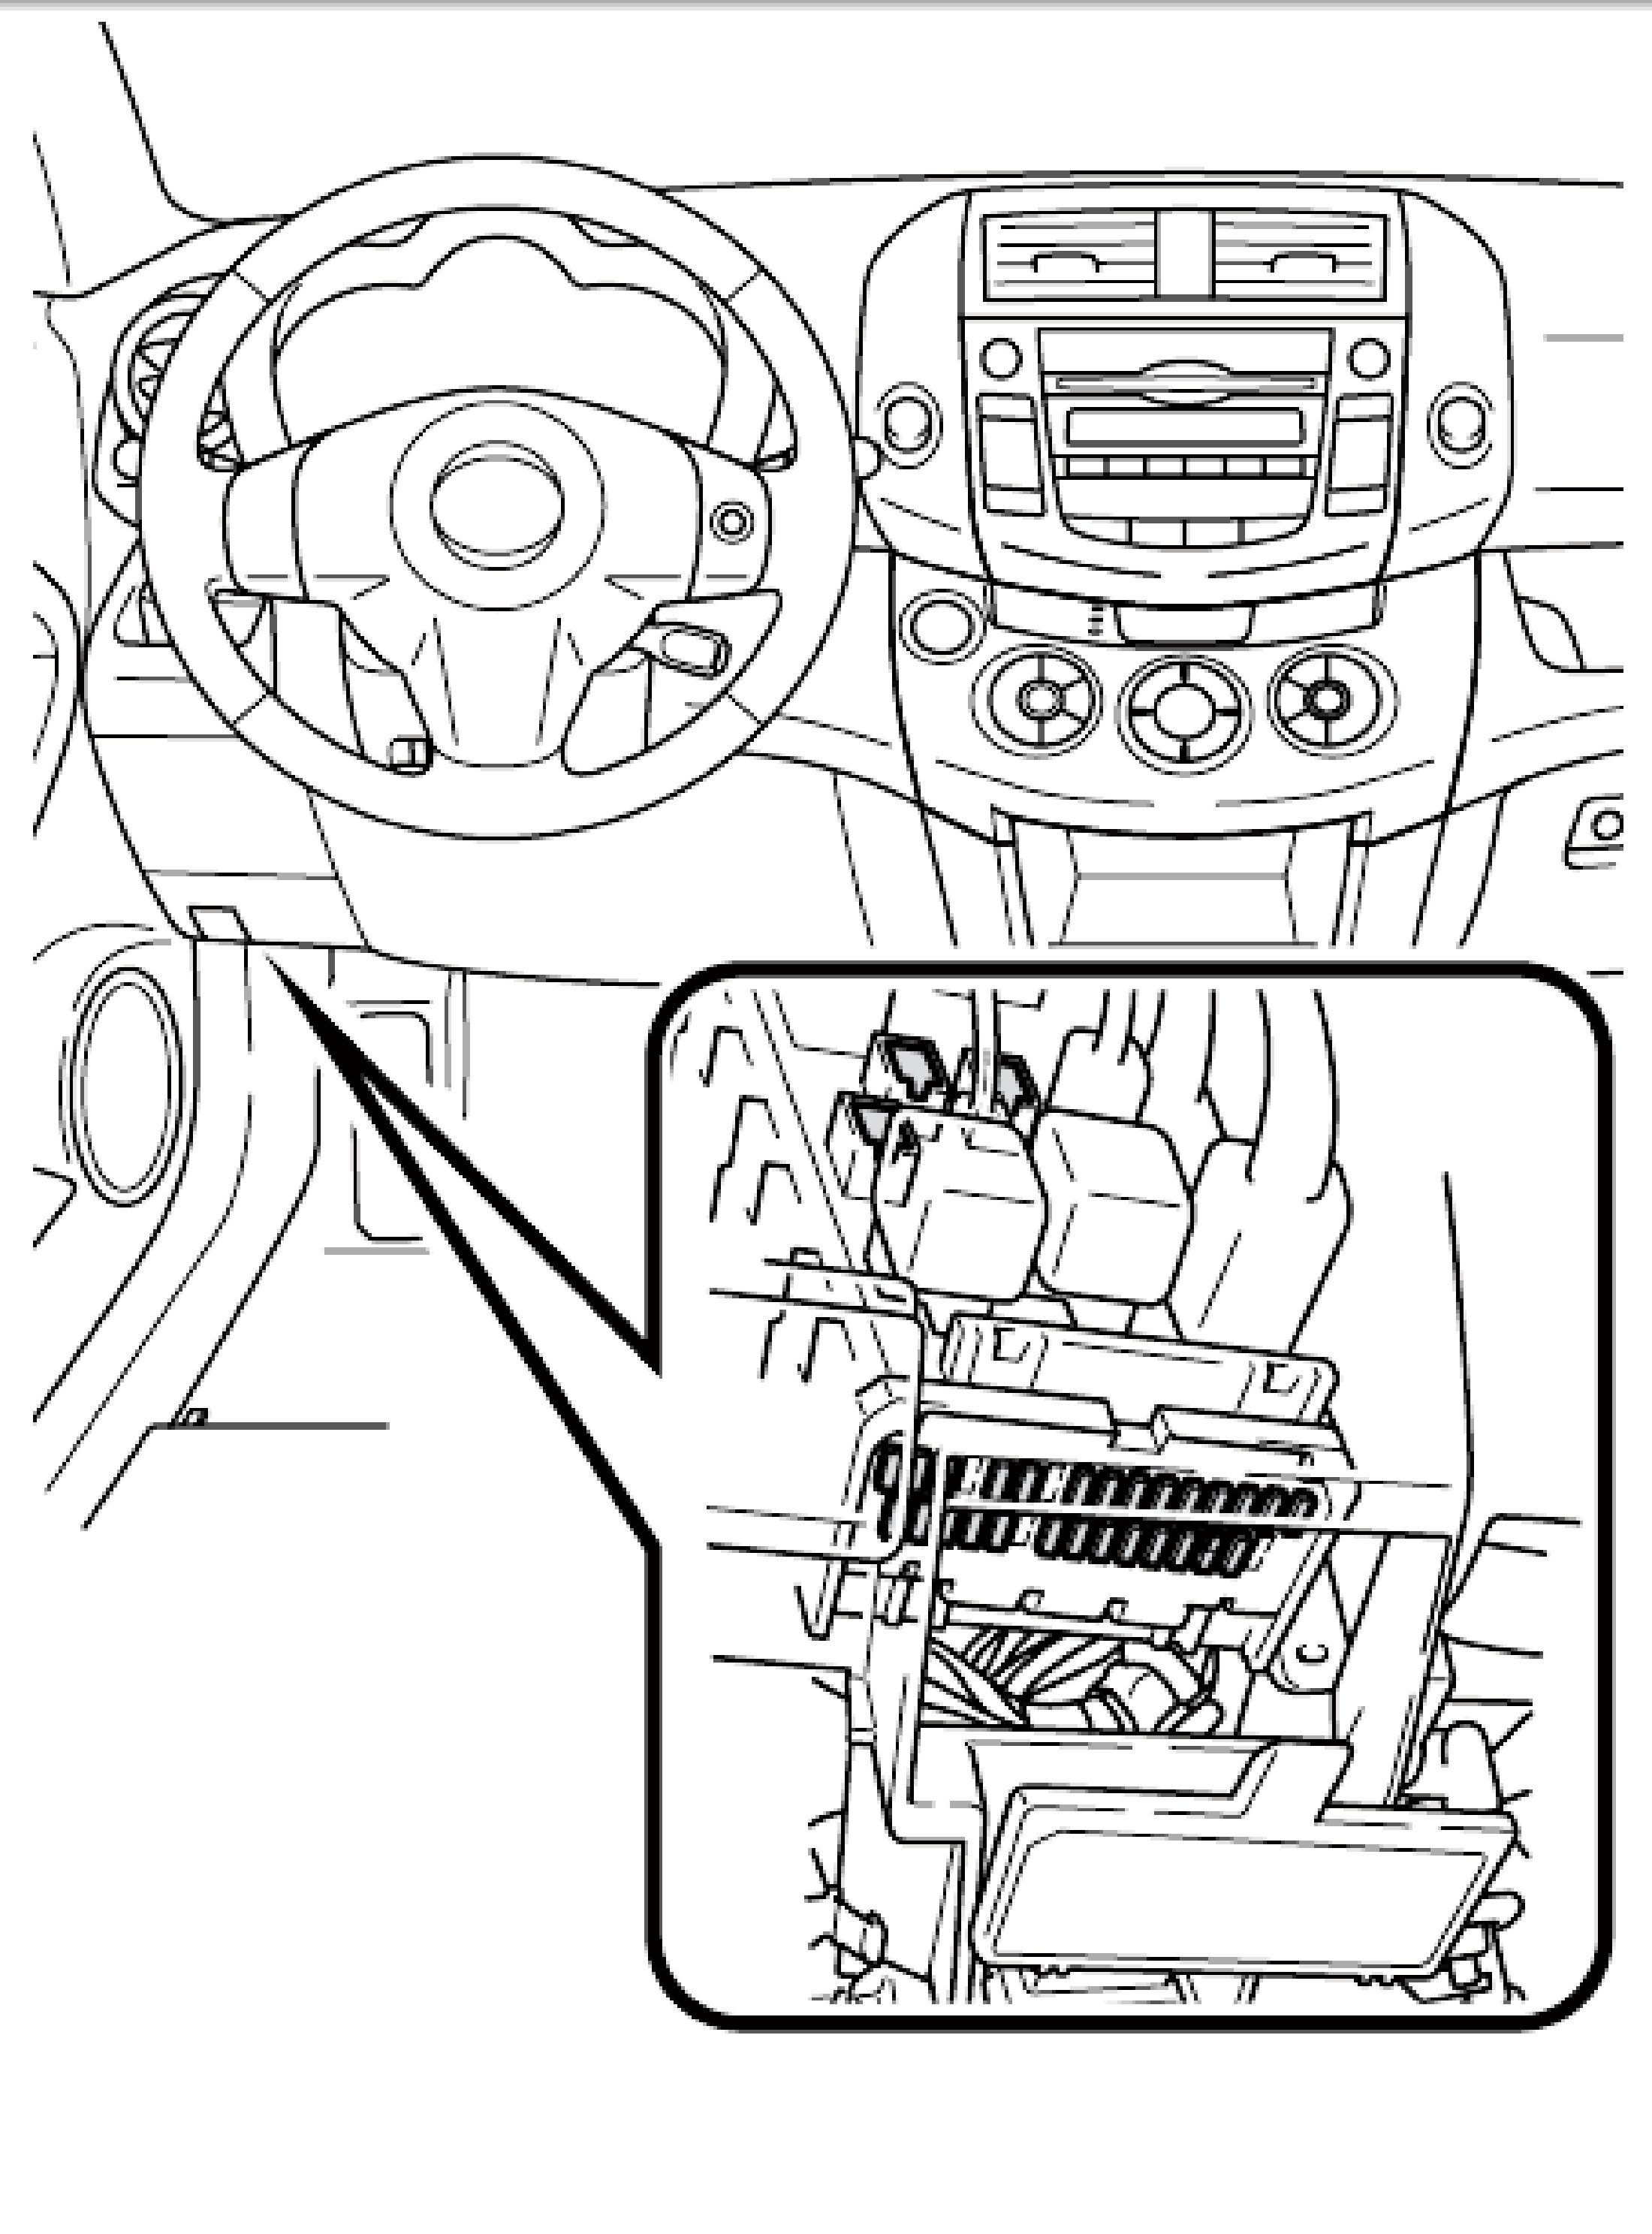 toyota rav4 fuse box location GCKEDBA rav4 fuse box location 1998 wiring diagrams instruction 1998 toyota rav4 fuse box at gsmx.co